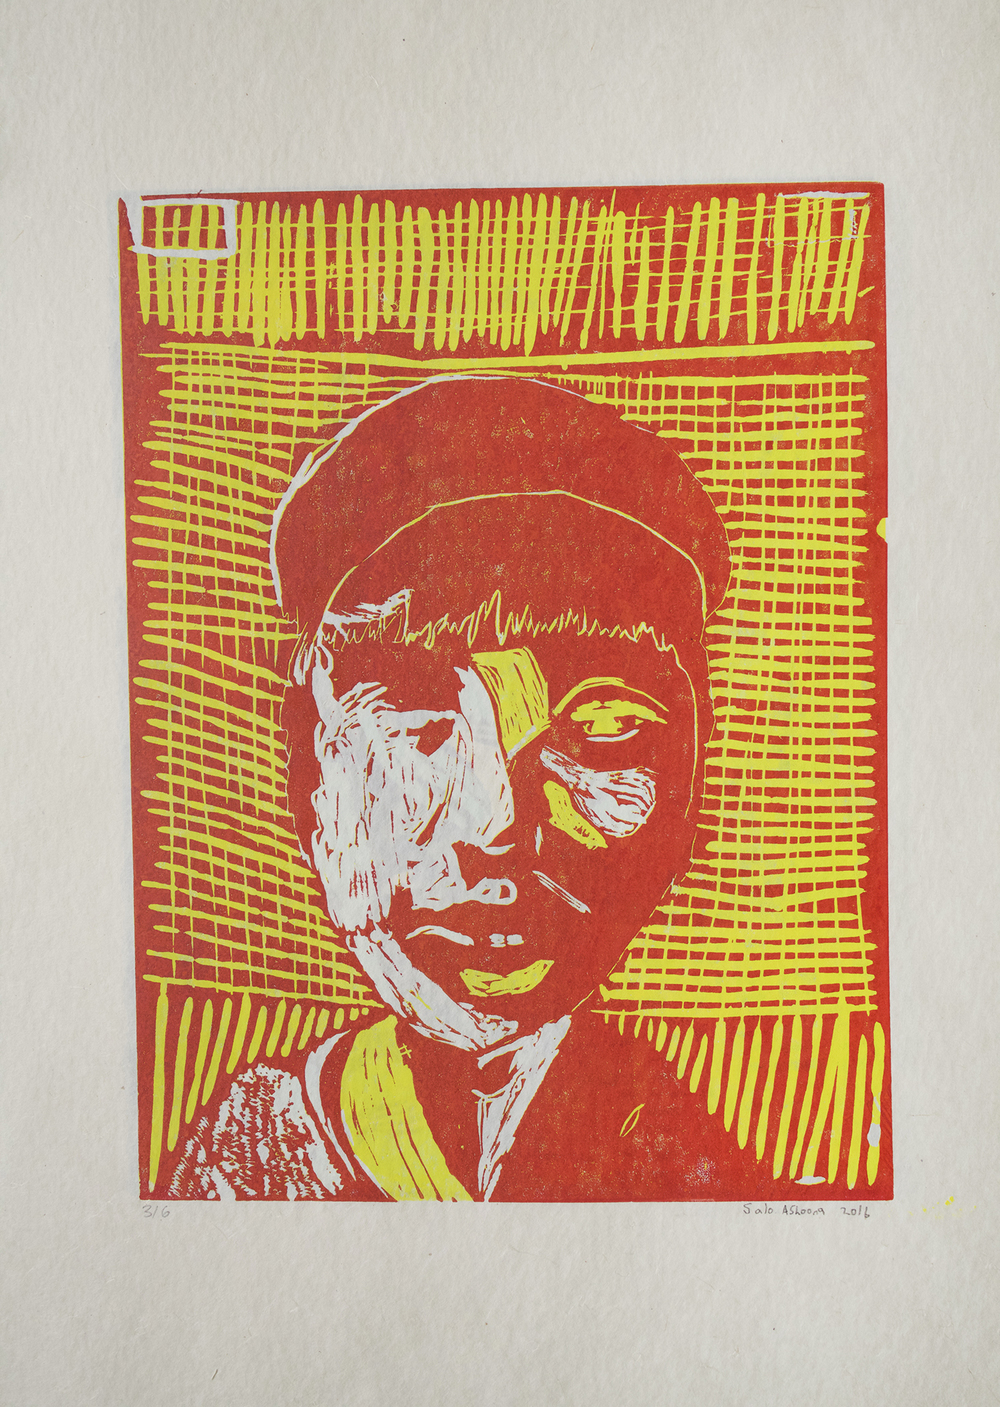 Uvanga: Self-Portrait   Salomonie Ashoona  Two-Layer Linocut on Washi  15.5 x 21.5""